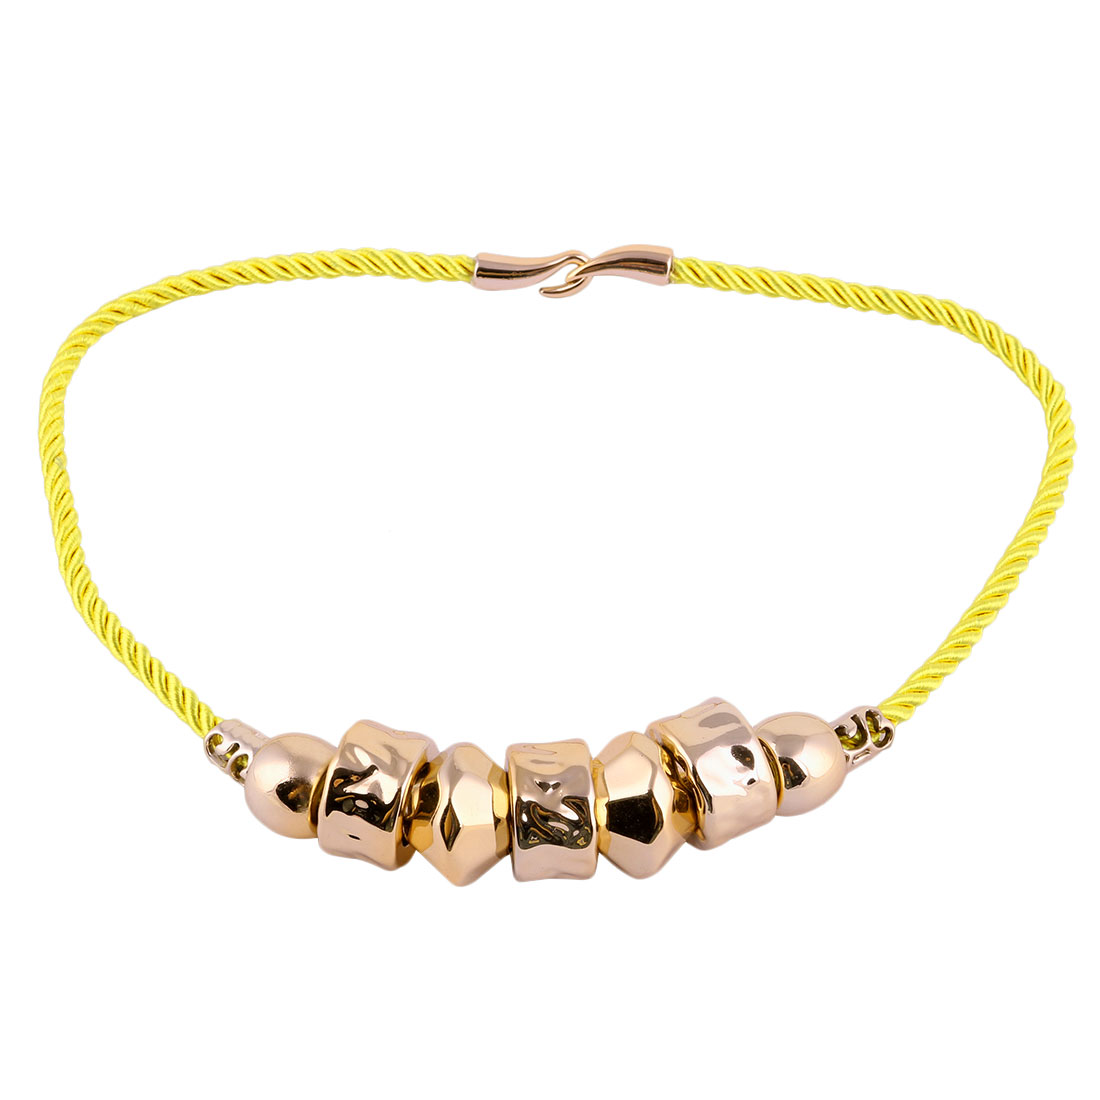 Woman Cylindrical Beads Neck Chain Necklace Statement Chunky Decor Yellow